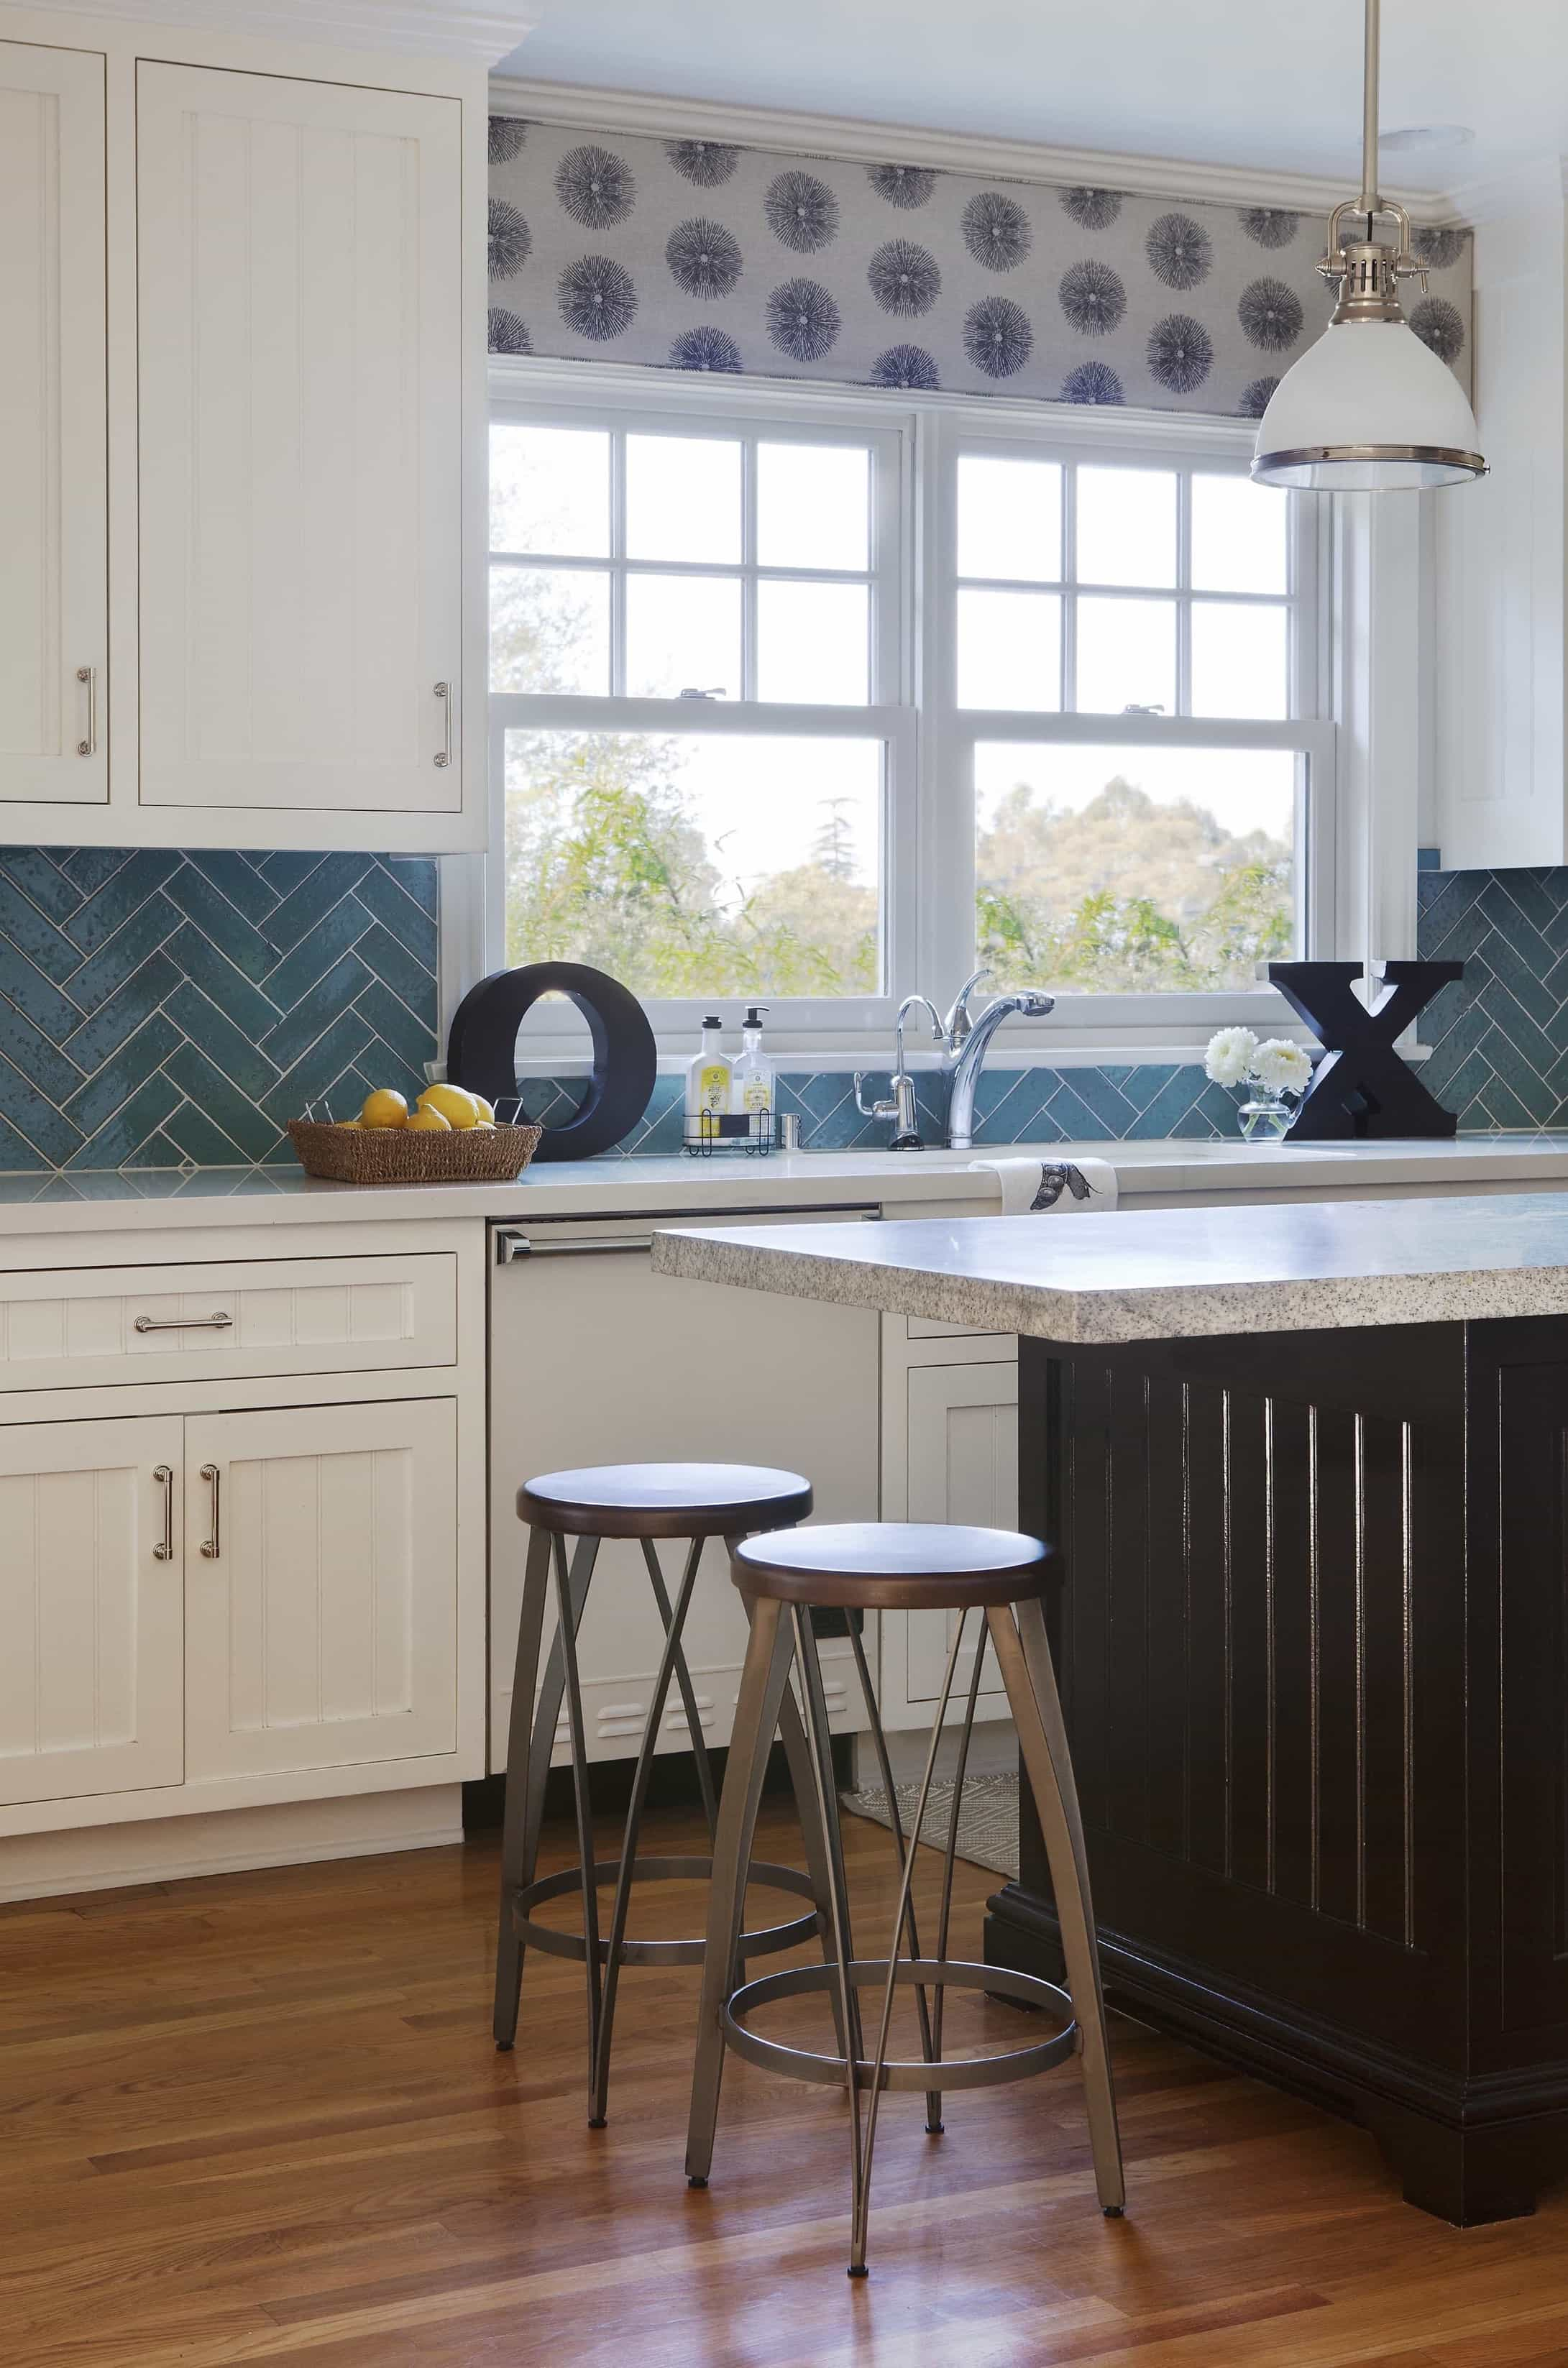 Featured Image of Brentwood Kitchen With Coastal Flair